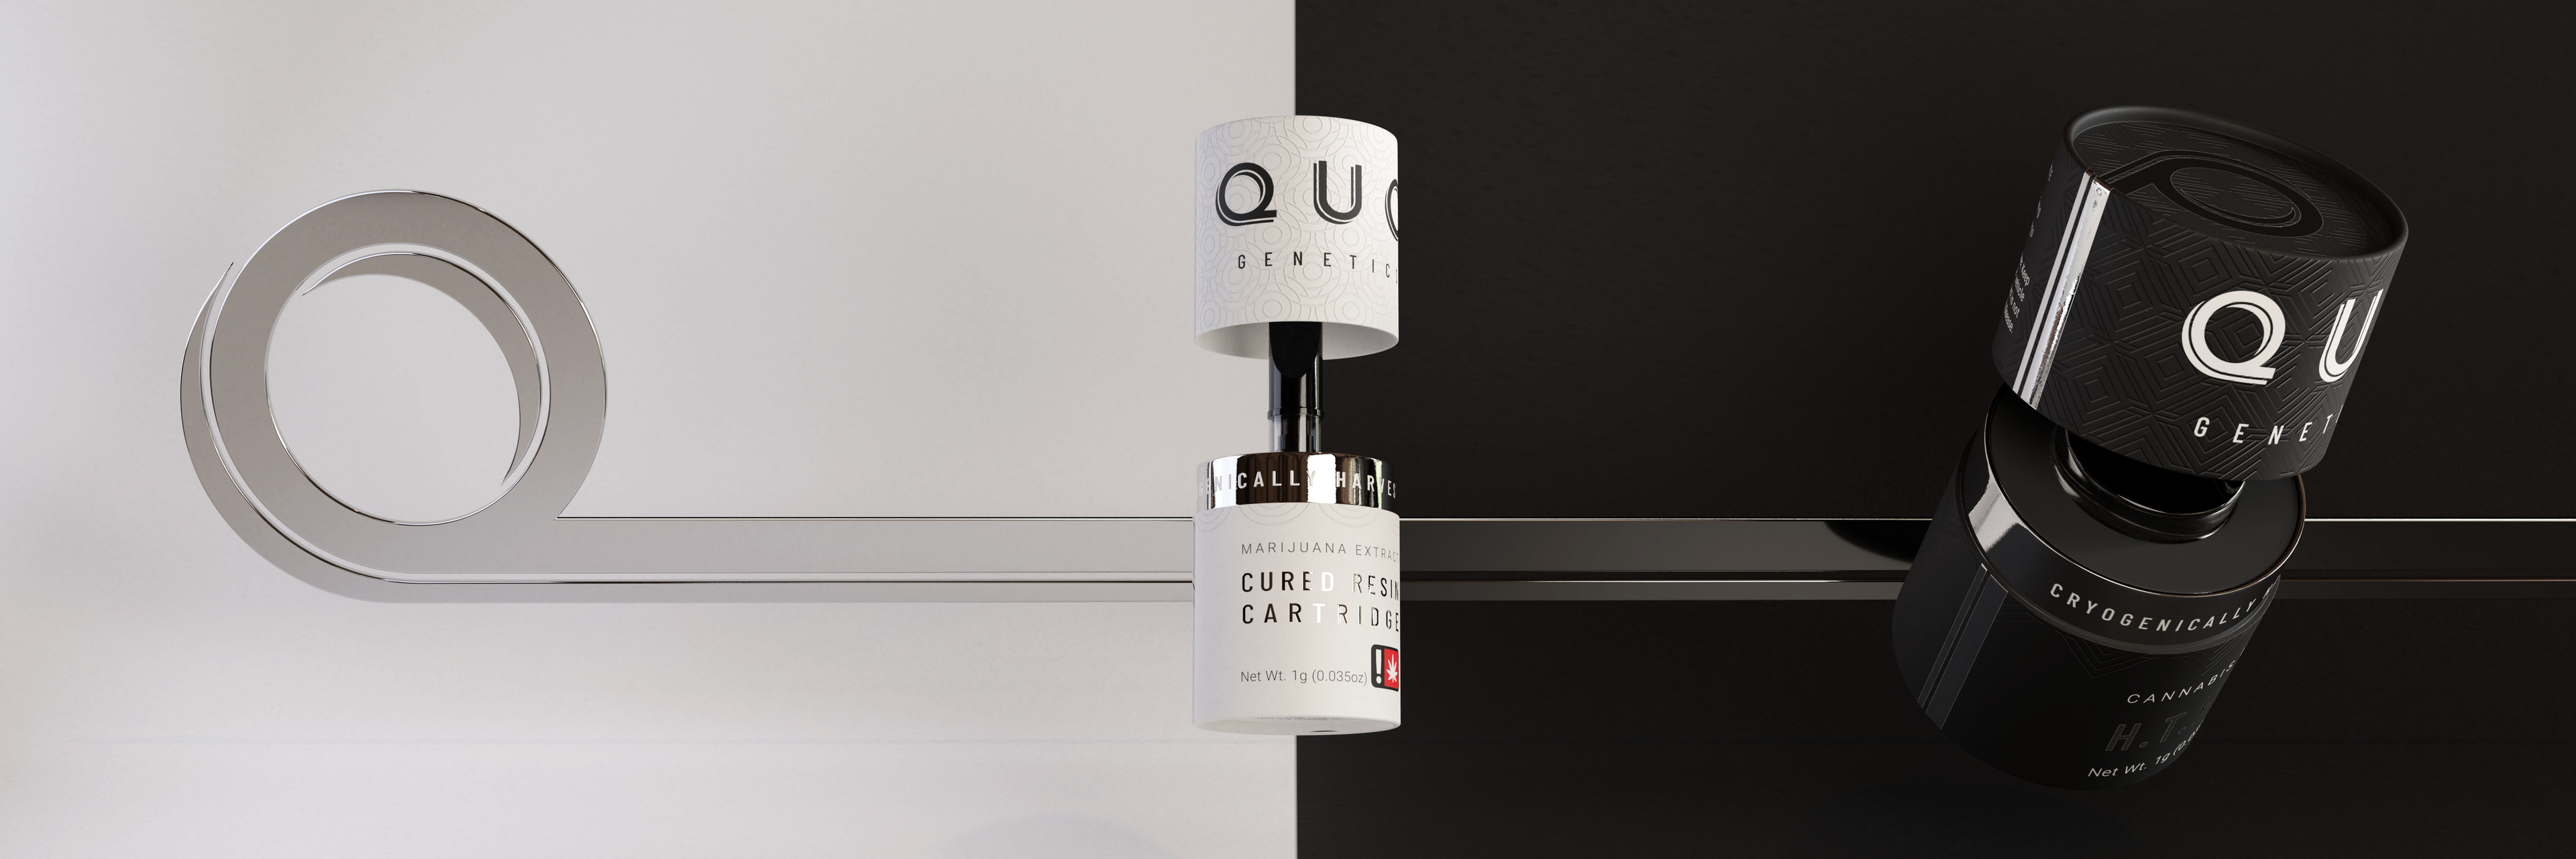 Branding and Package Design by Bonnie Brade @KindTyme